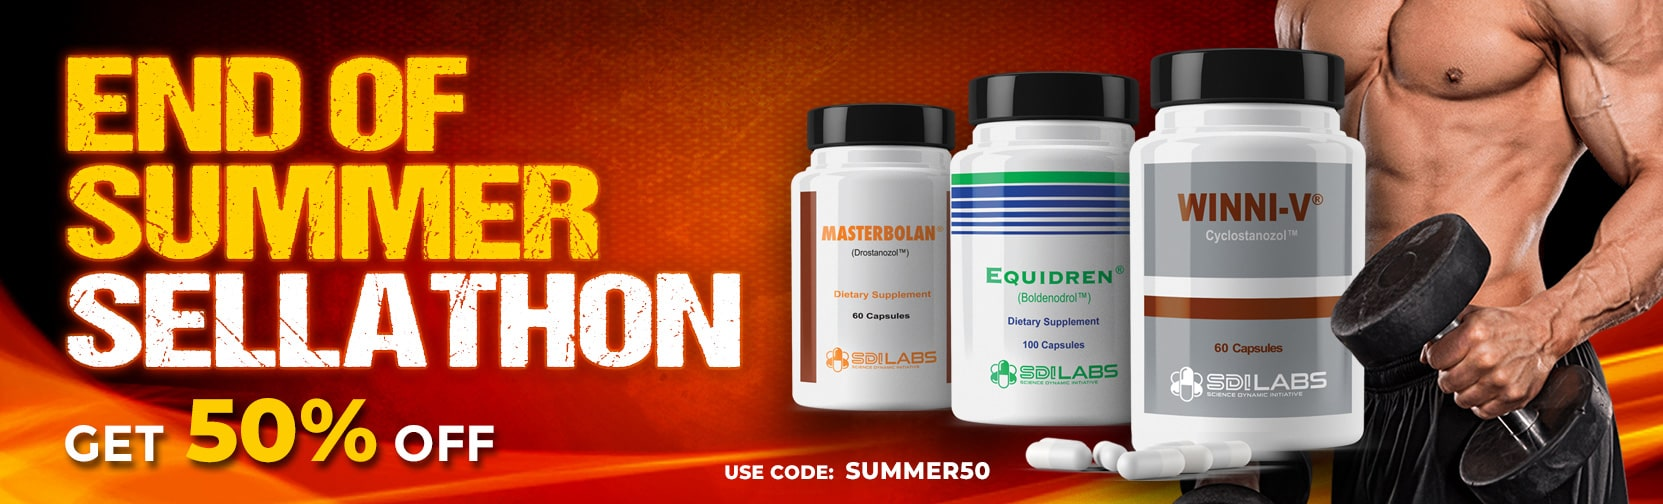 Legal Steroids End of Summer Sale